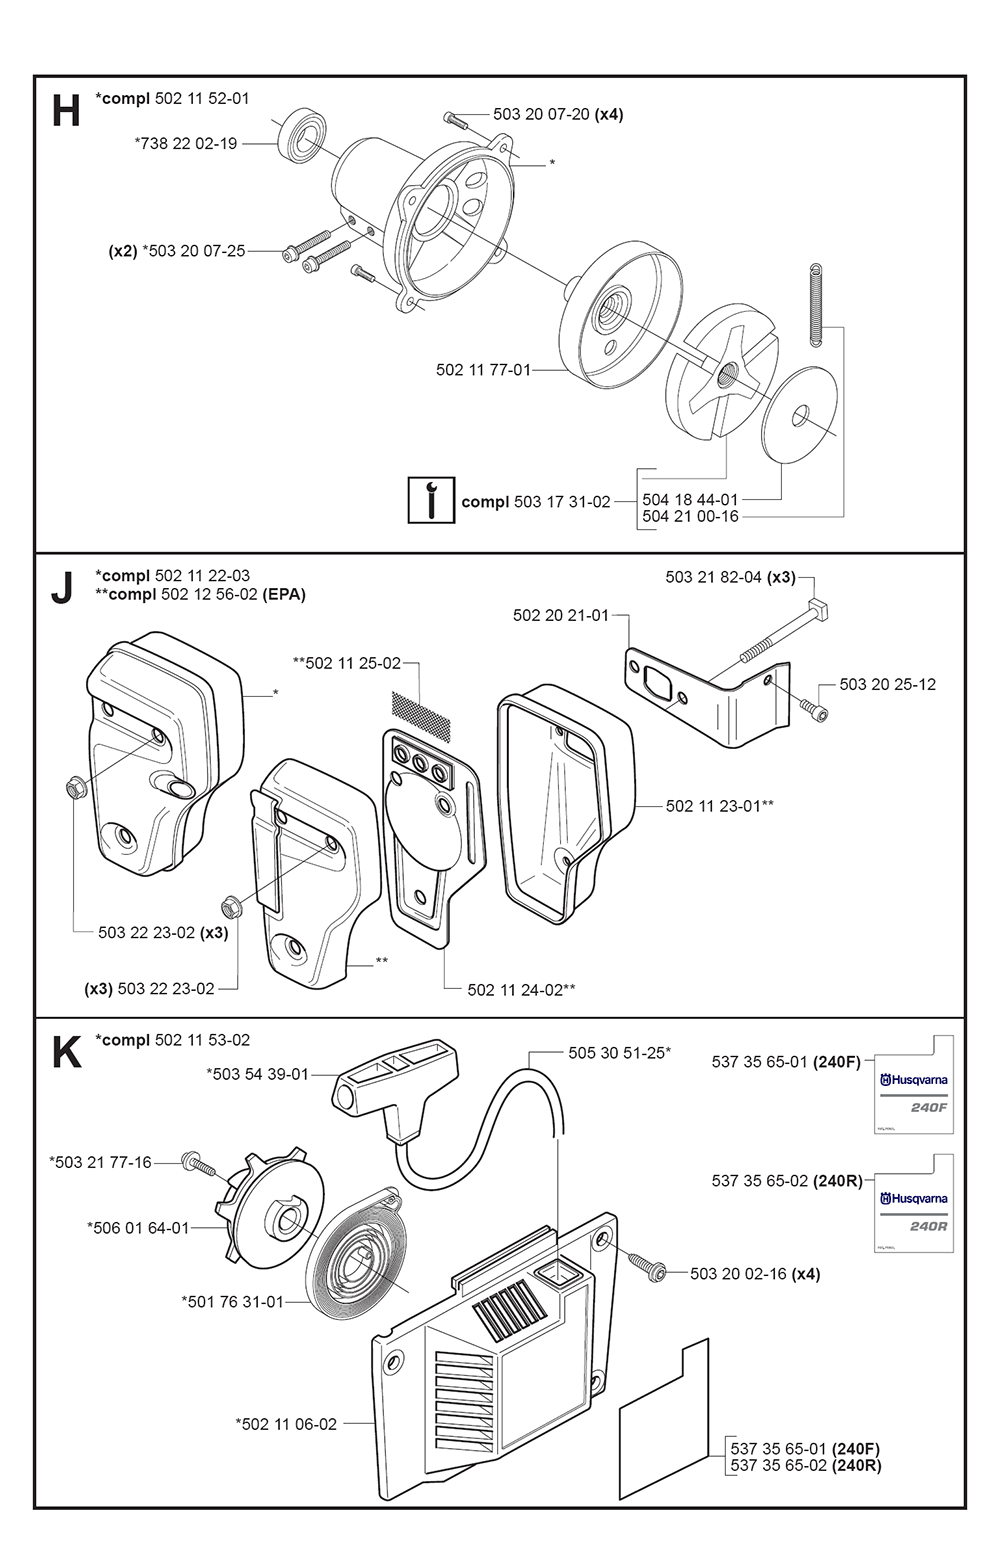 240 R-(5441951-01)-Husqvarna-PB-3Break Down